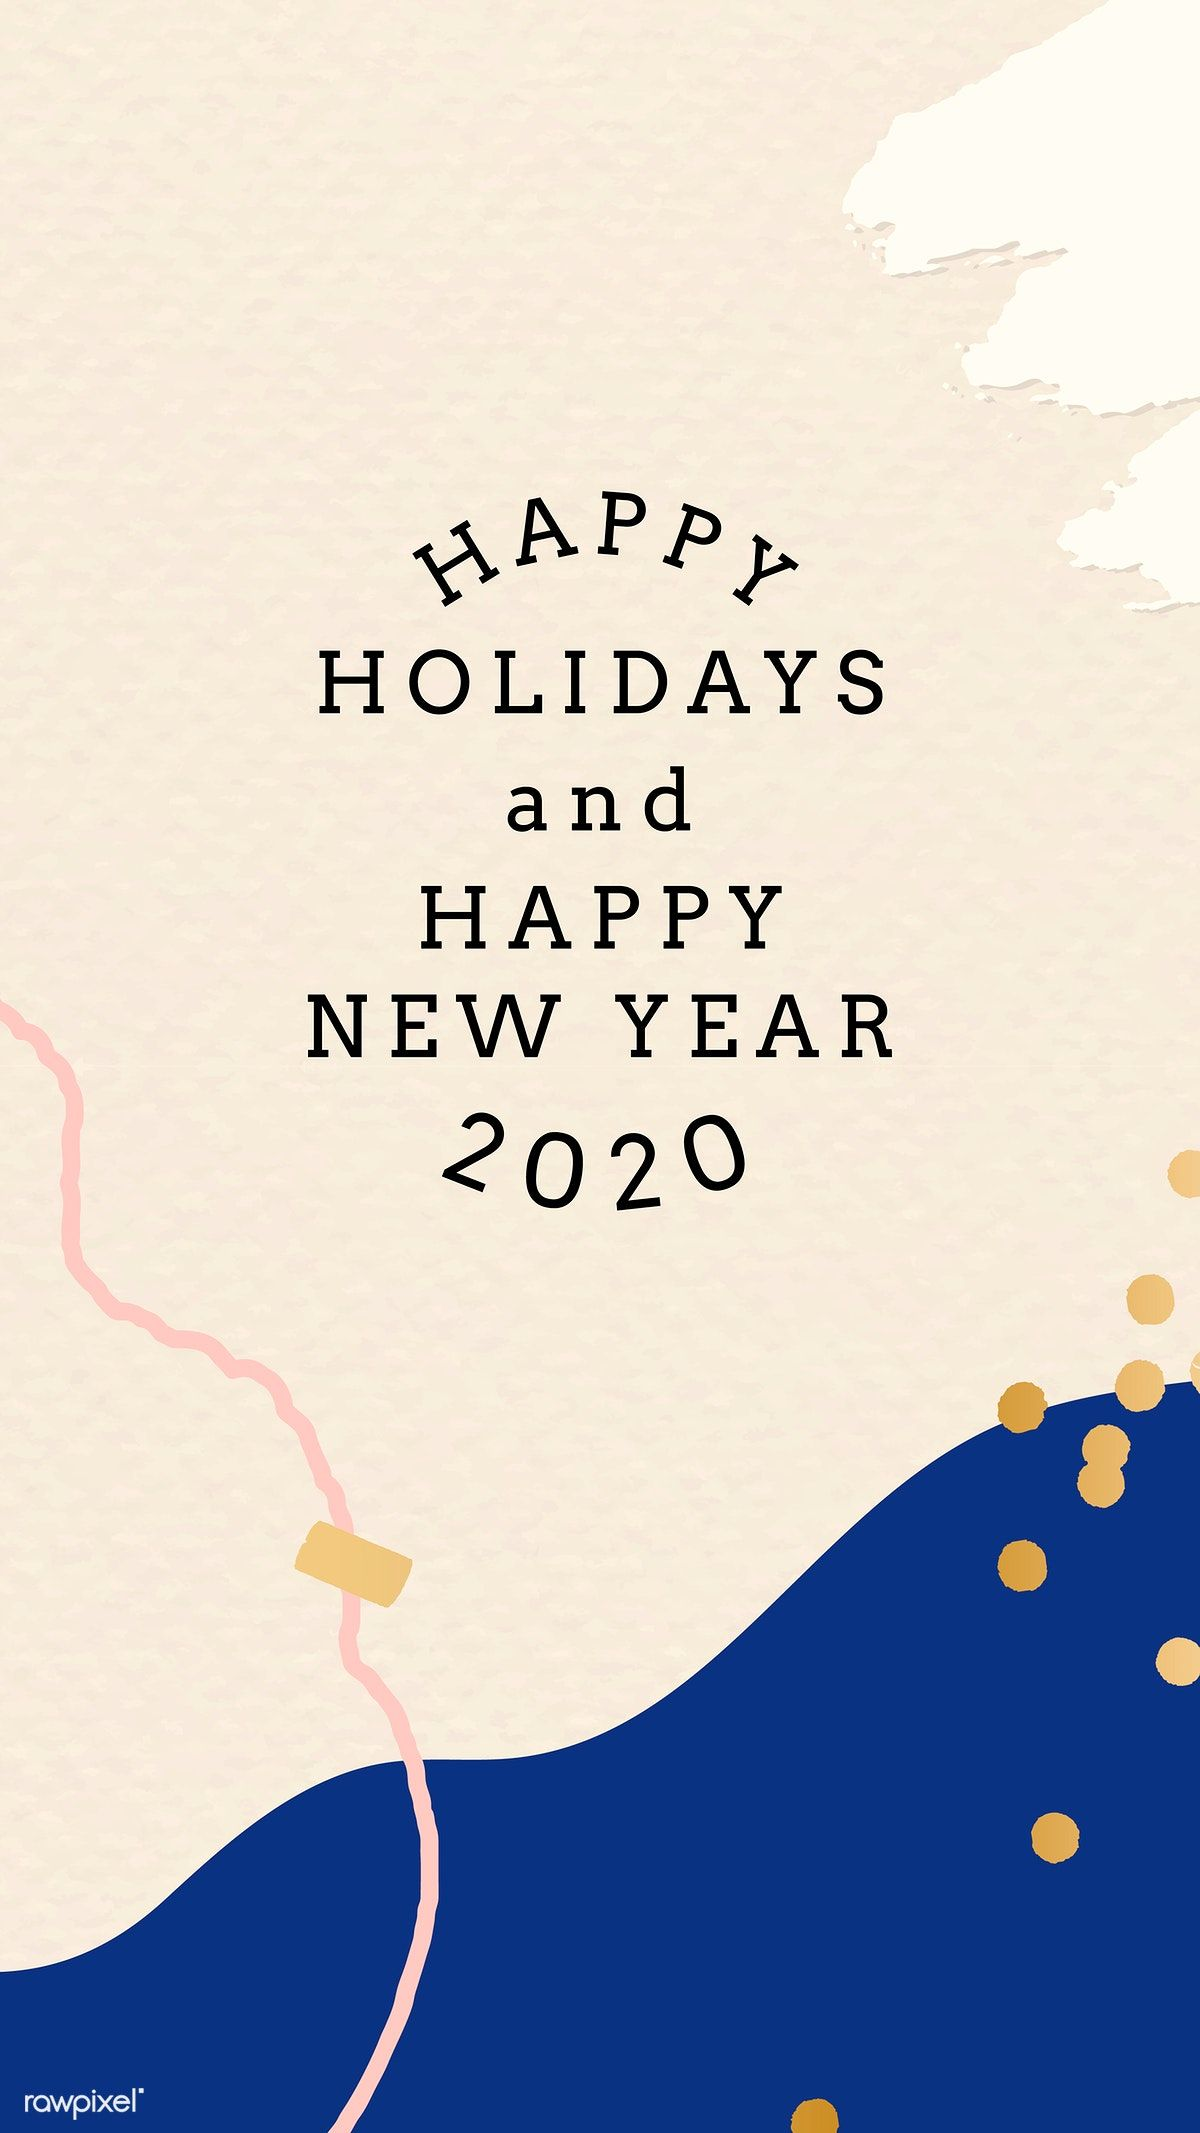 Download premium vector of Happy New Year 2020 Memphis design 1200x2133